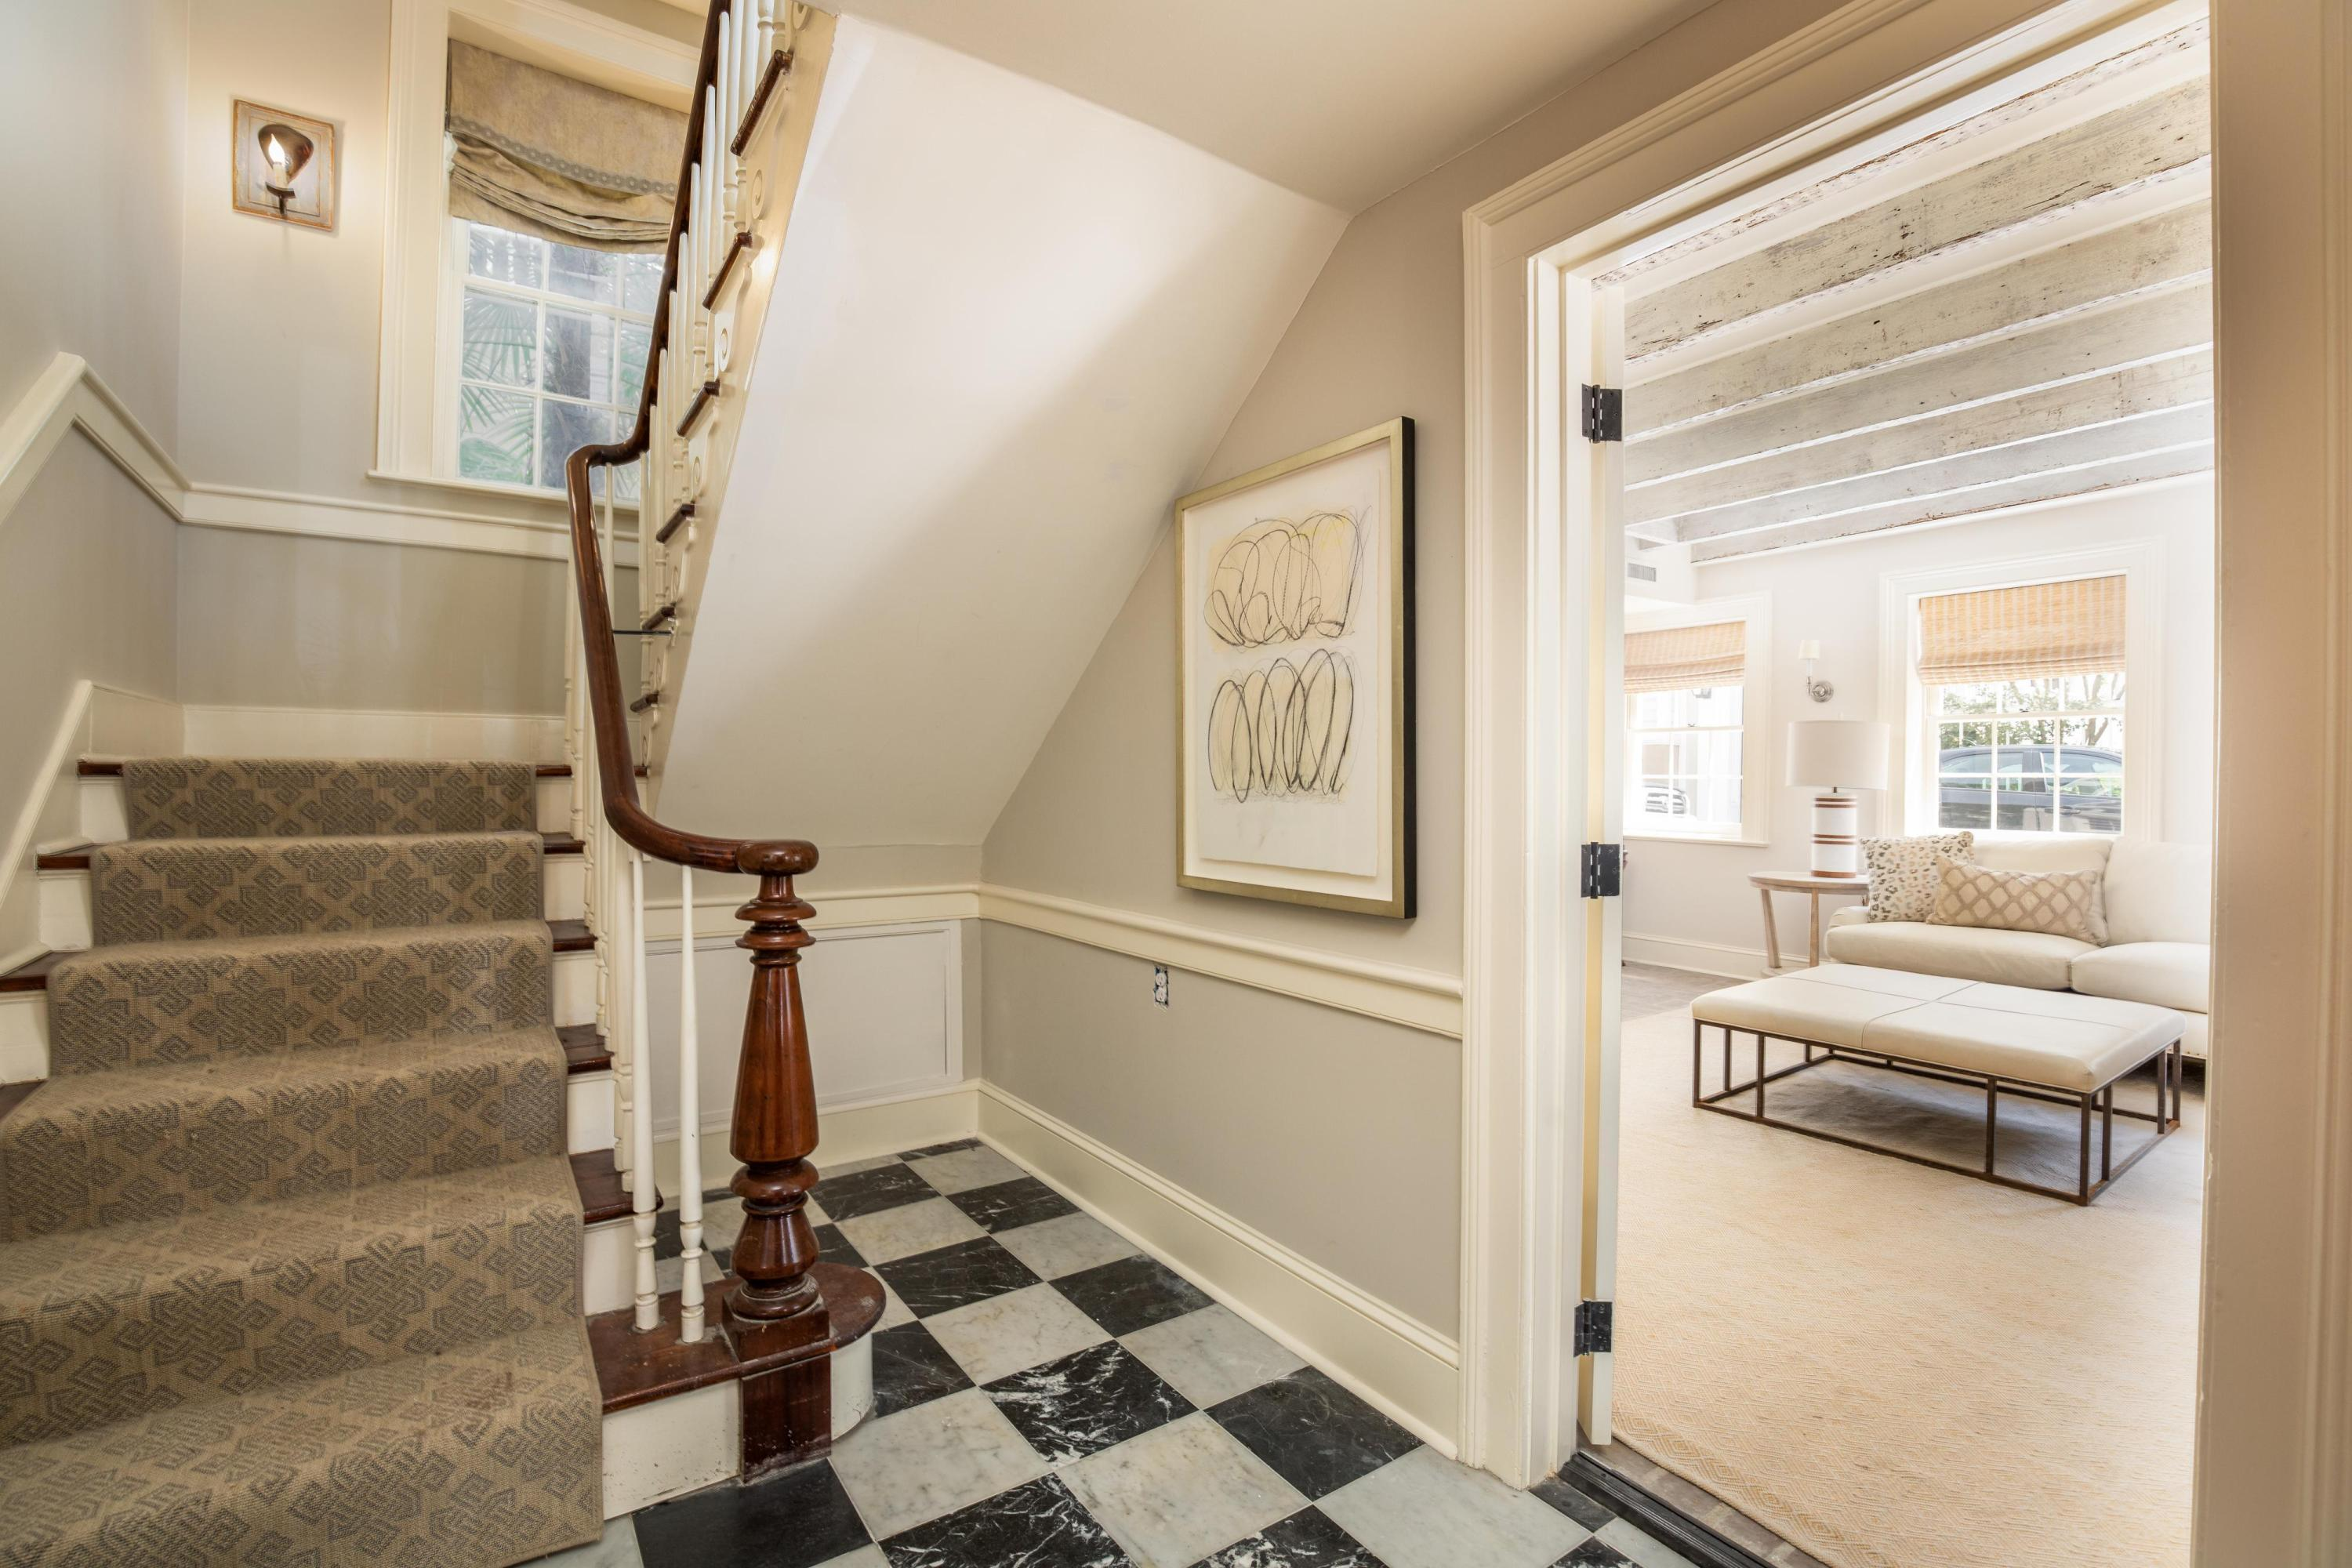 South of Broad Homes For Sale - 11 Church, Charleston, SC - 0